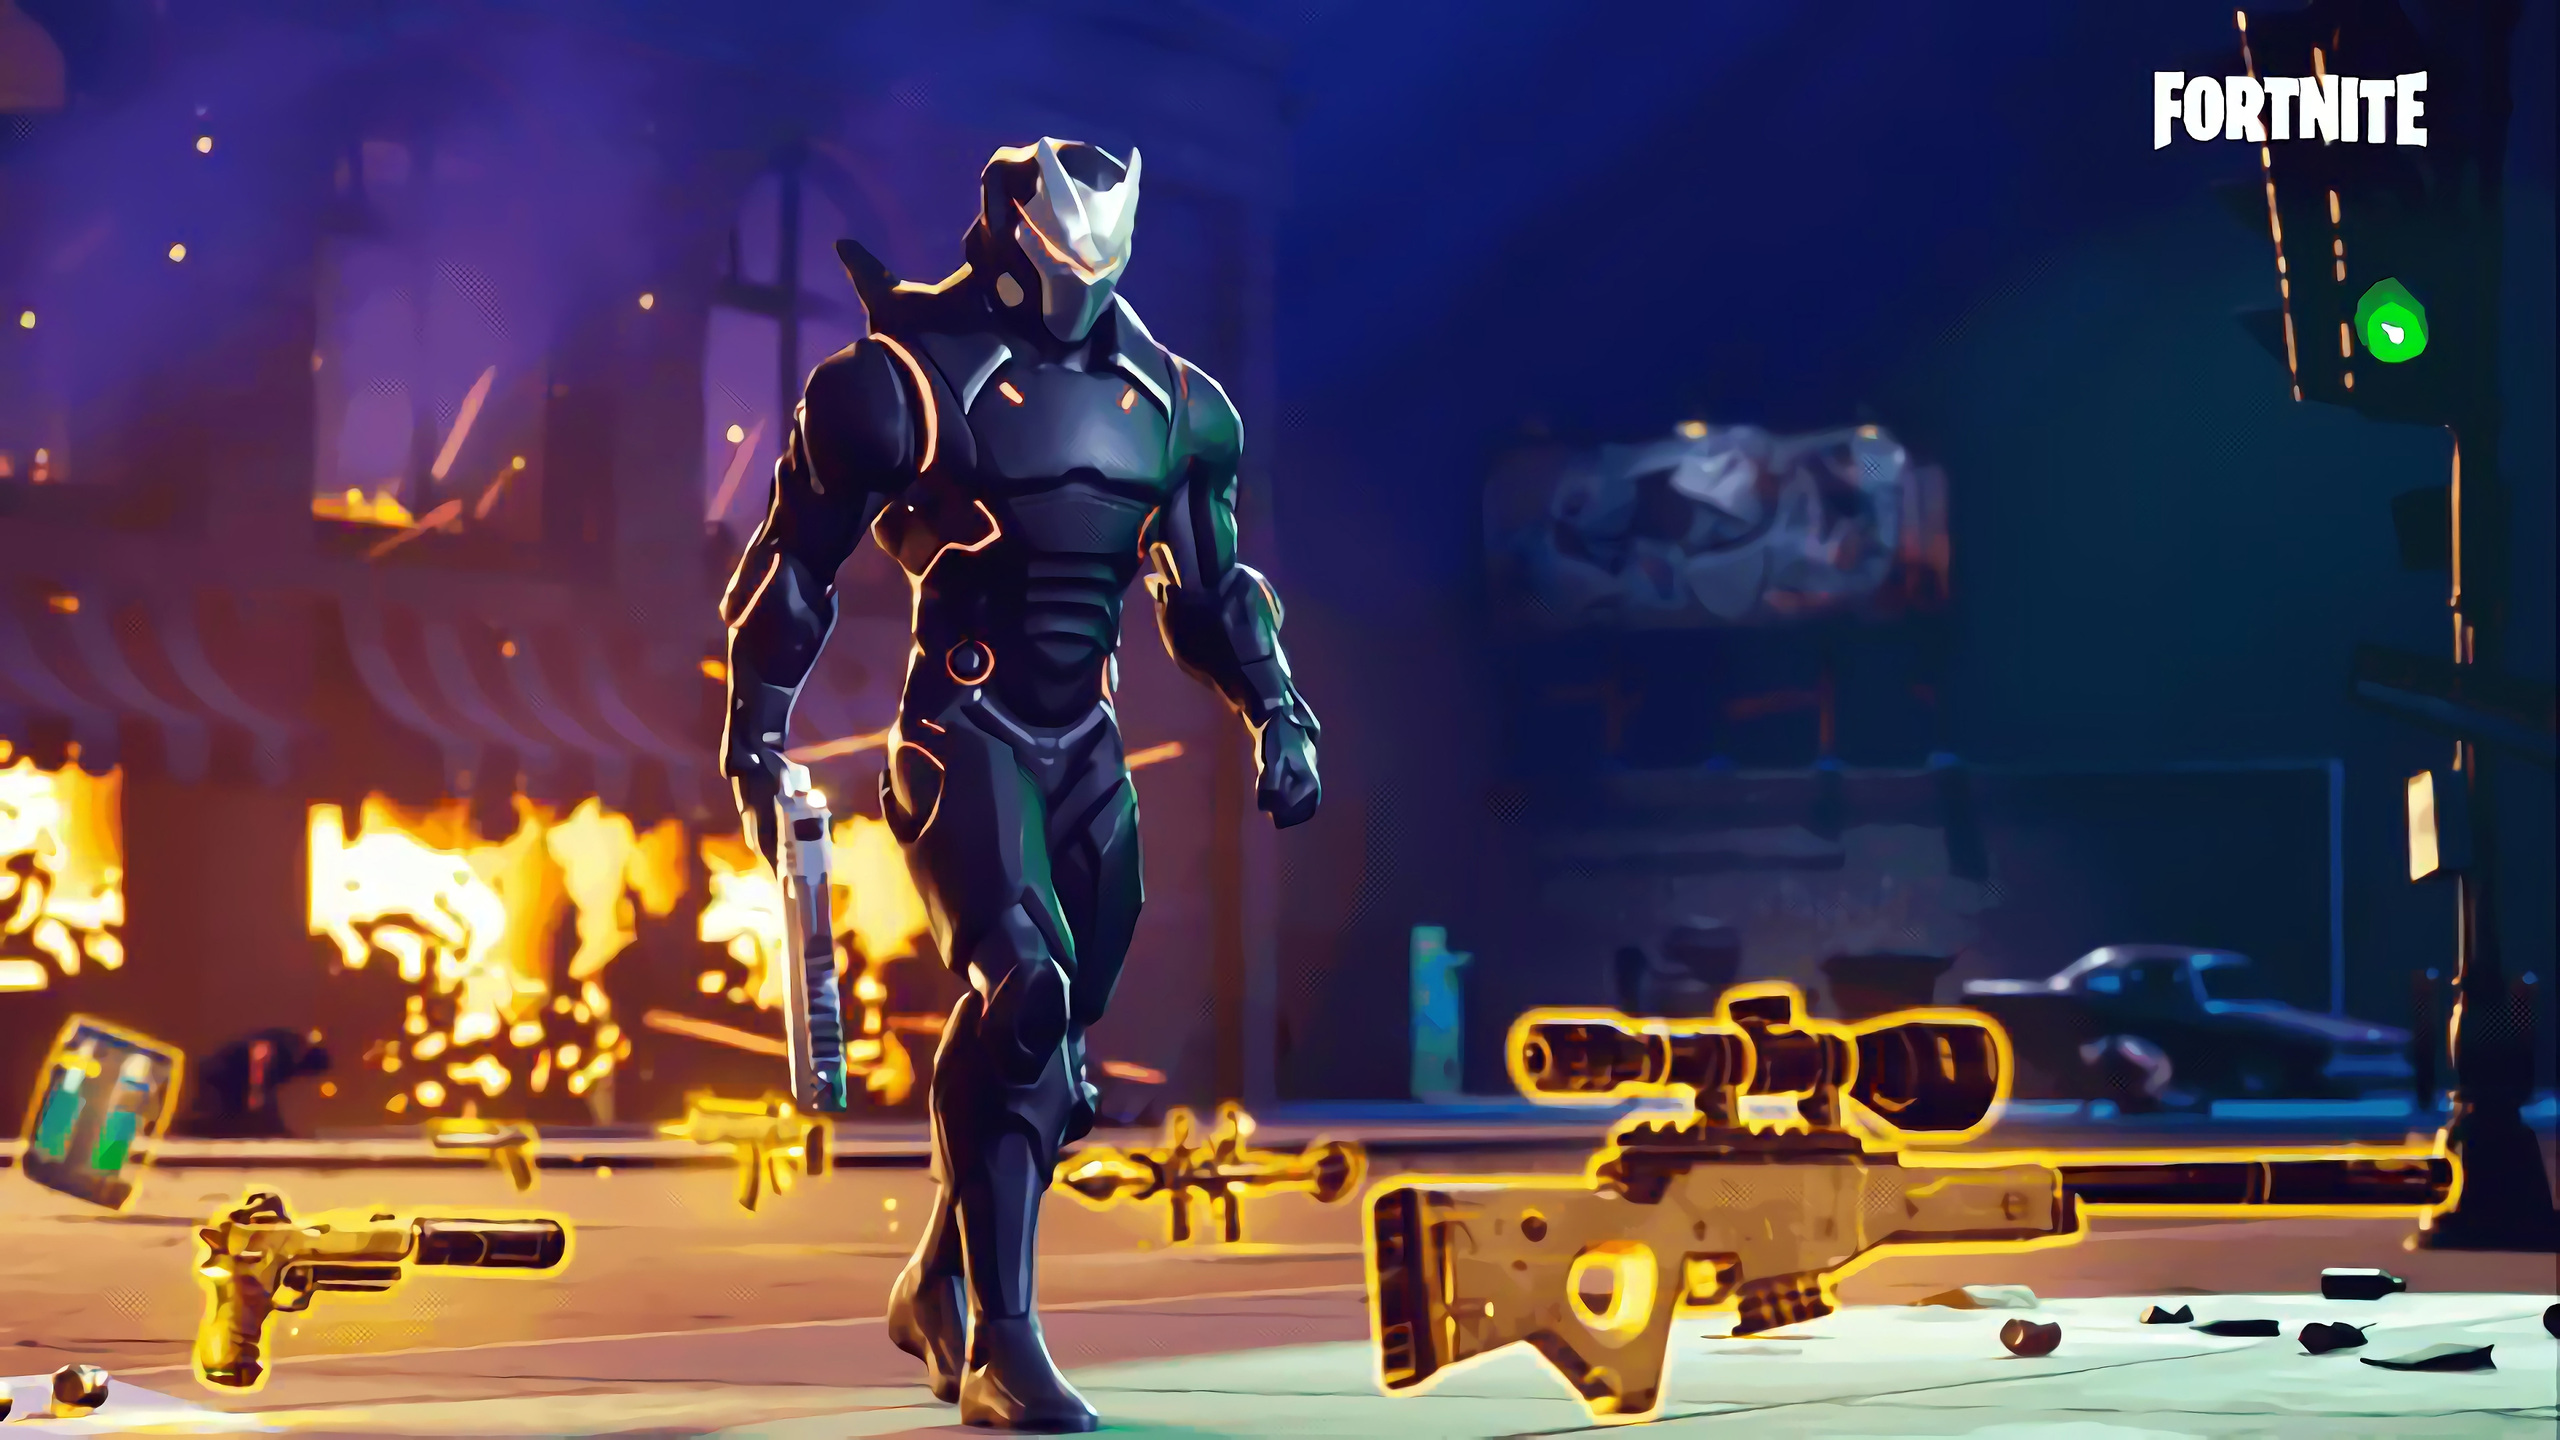 2560x1440 Fortnite Season 5 Omega 1440p Resolution Hd 4k